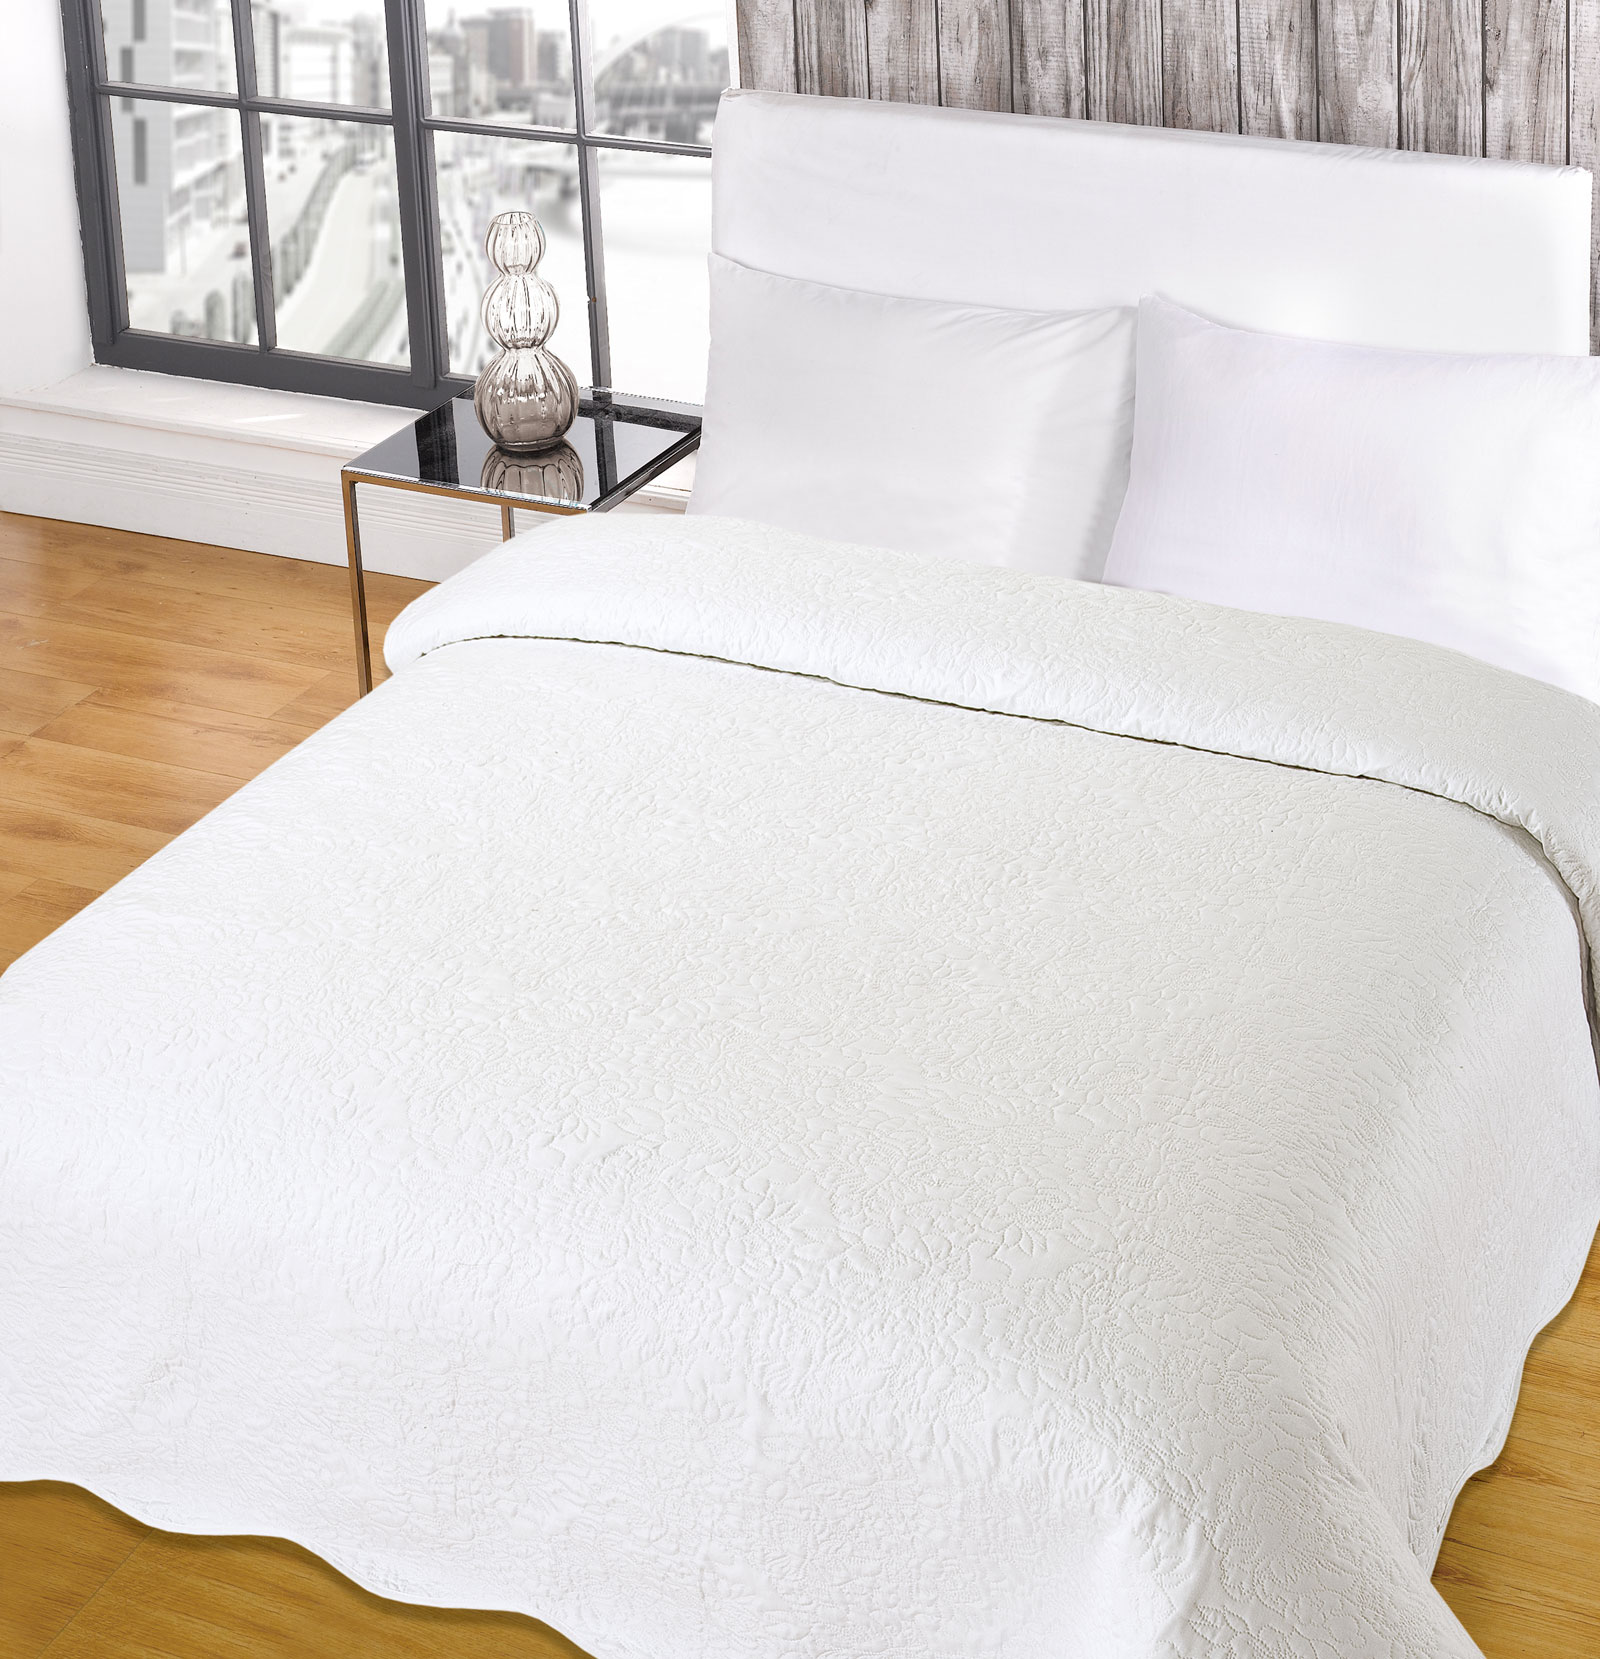 blanket blog did linens coast pacific you oversized image prod or bedding mean comforter down duvet cordovan covers